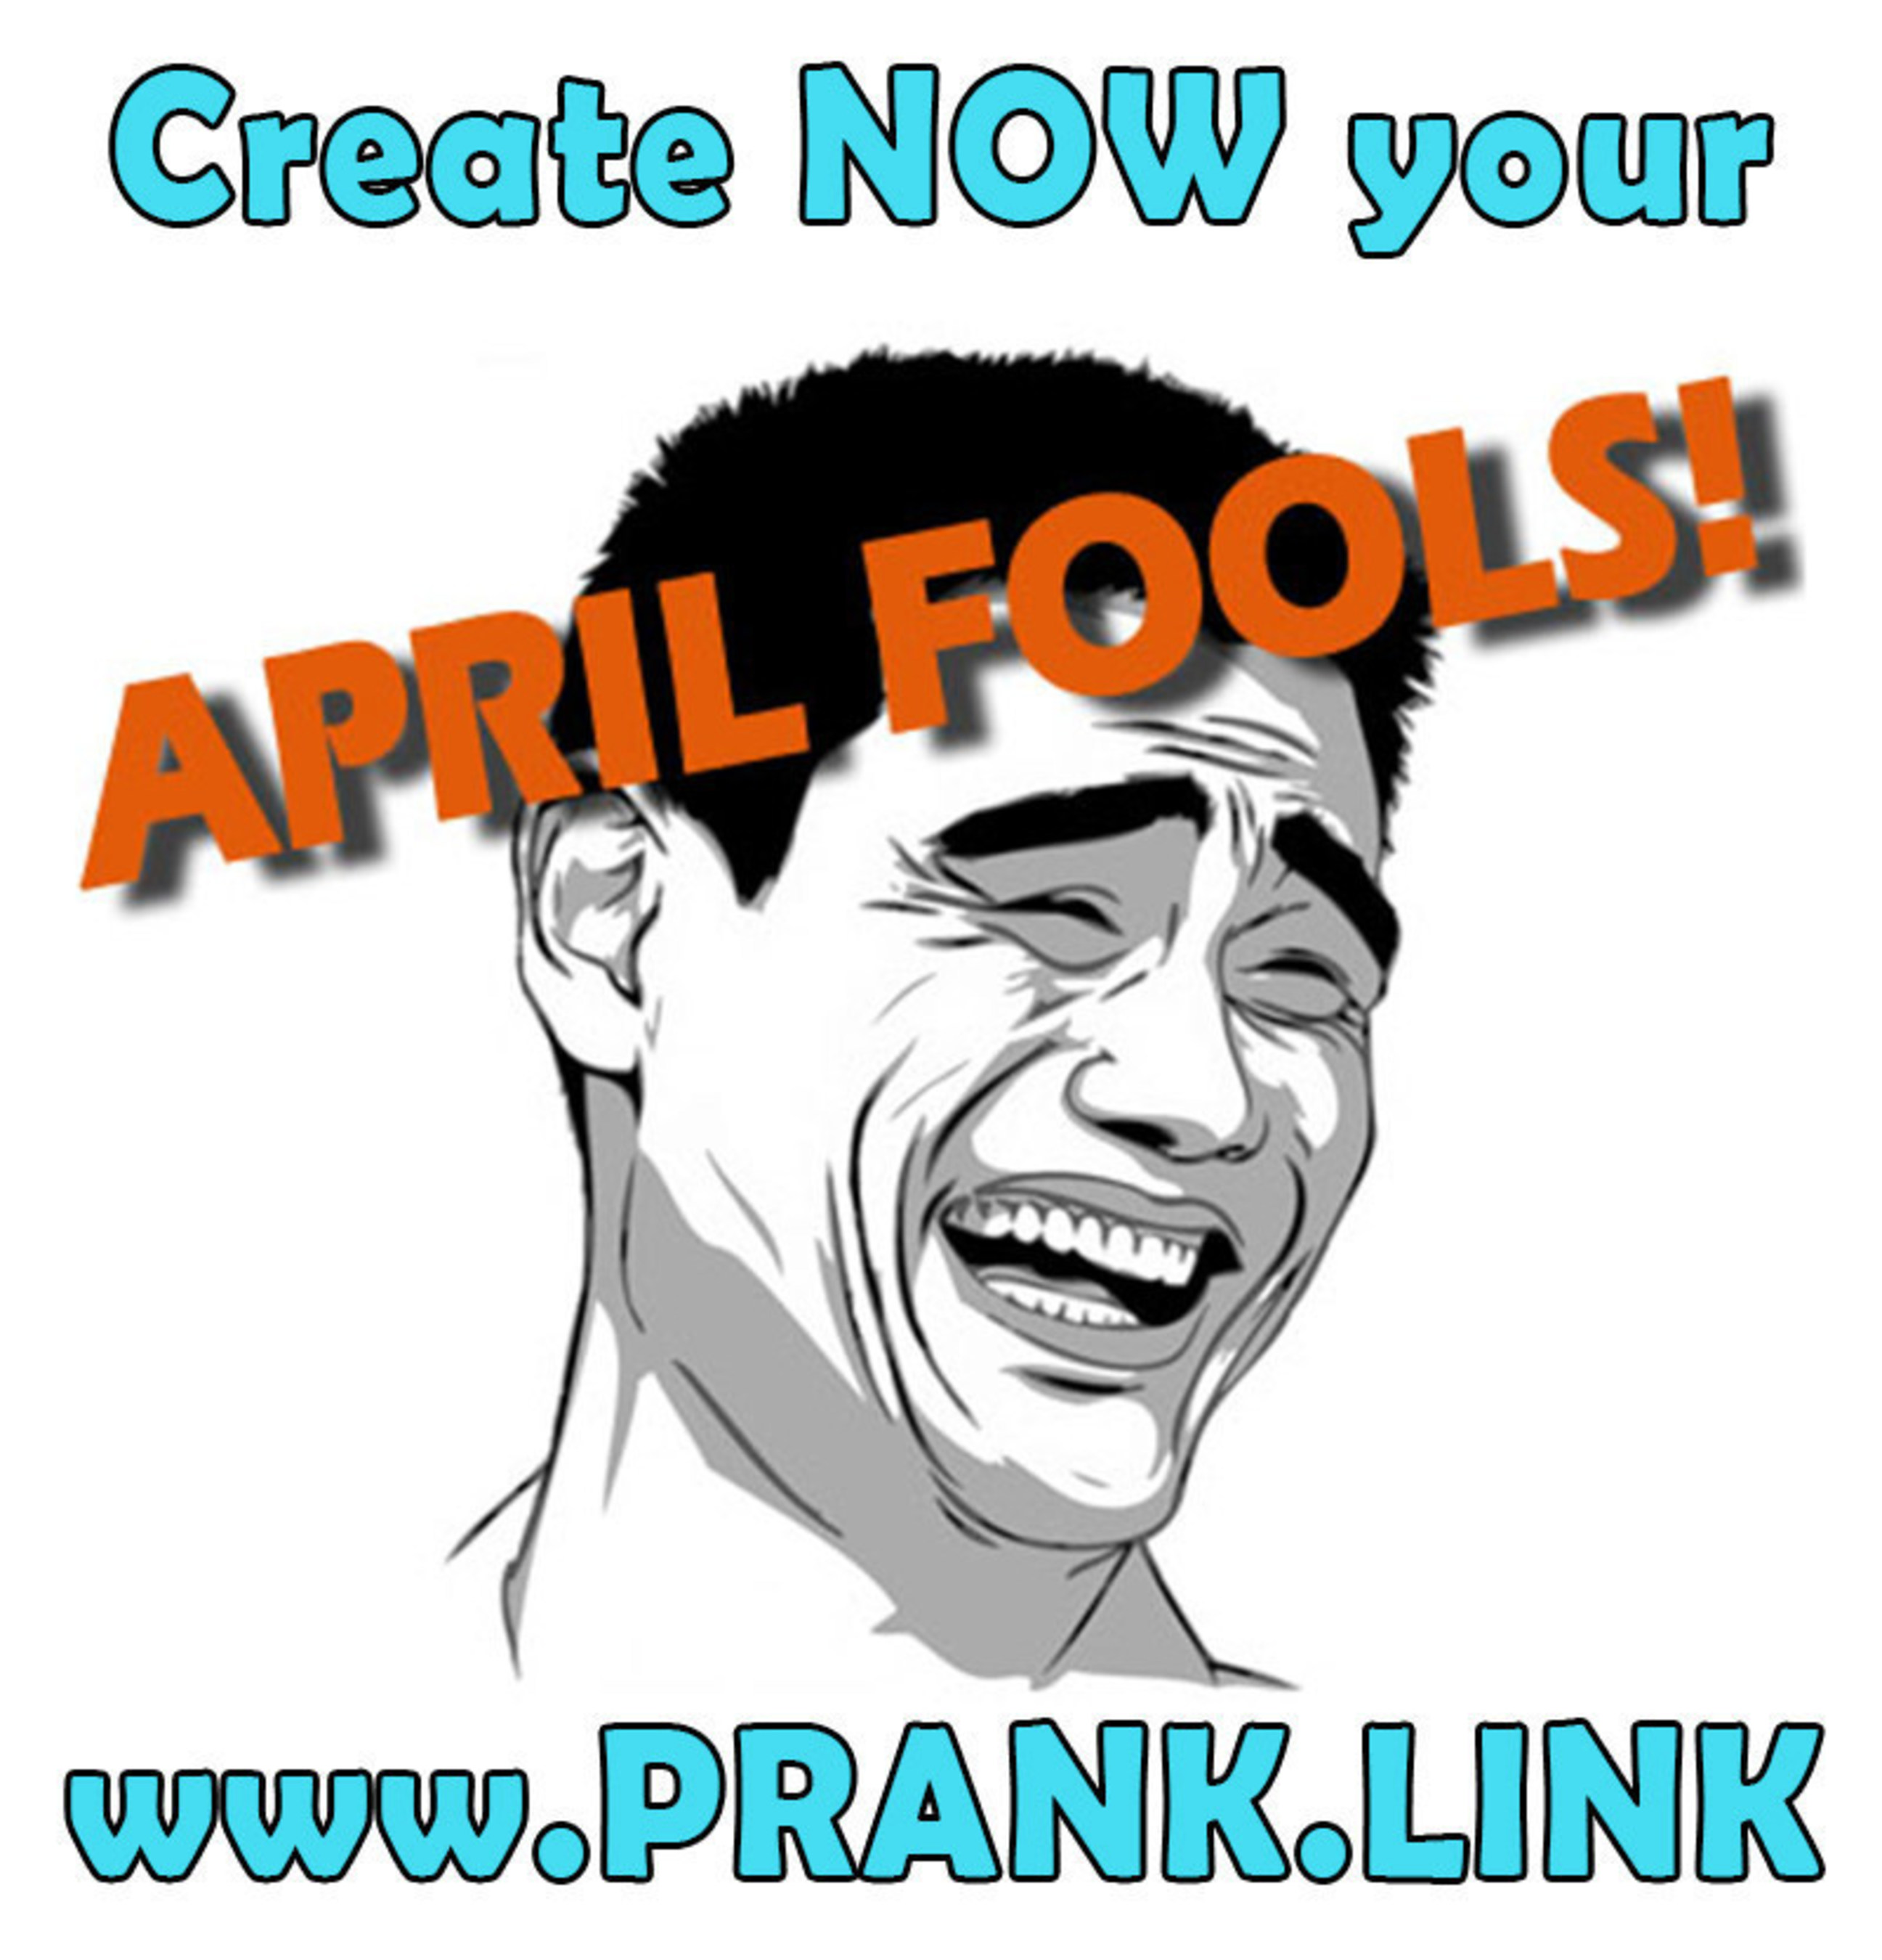 Prank.Link lets you create the best April Fool's Prank and share it